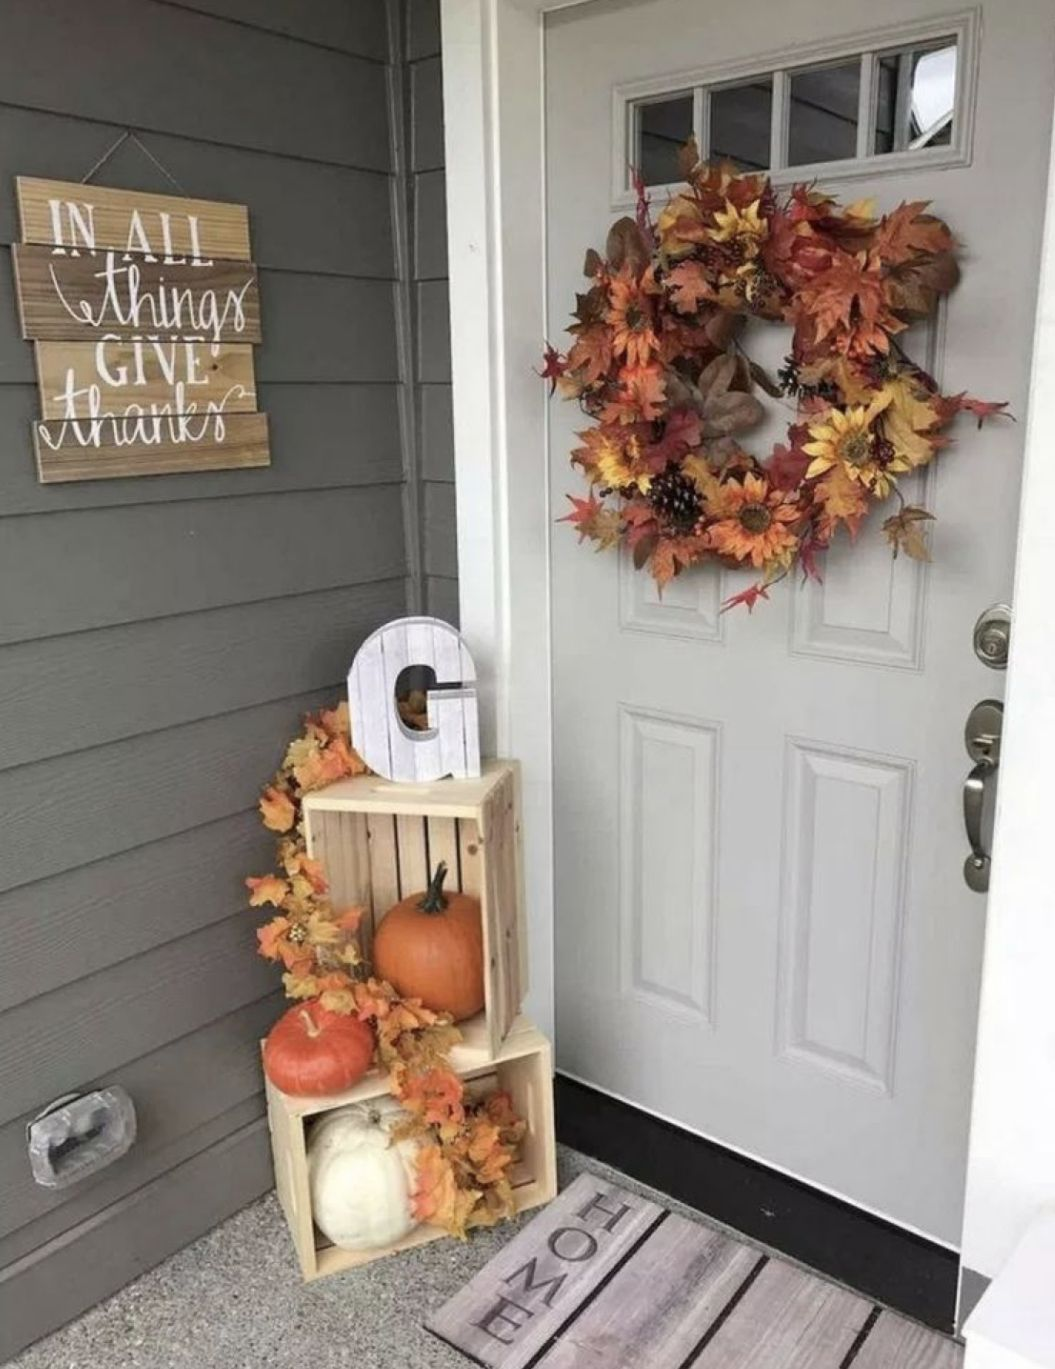 FiresideHome In-A-Word Welcome Wall Décor & Reviews | Wayfair #falldecorideasforthehome